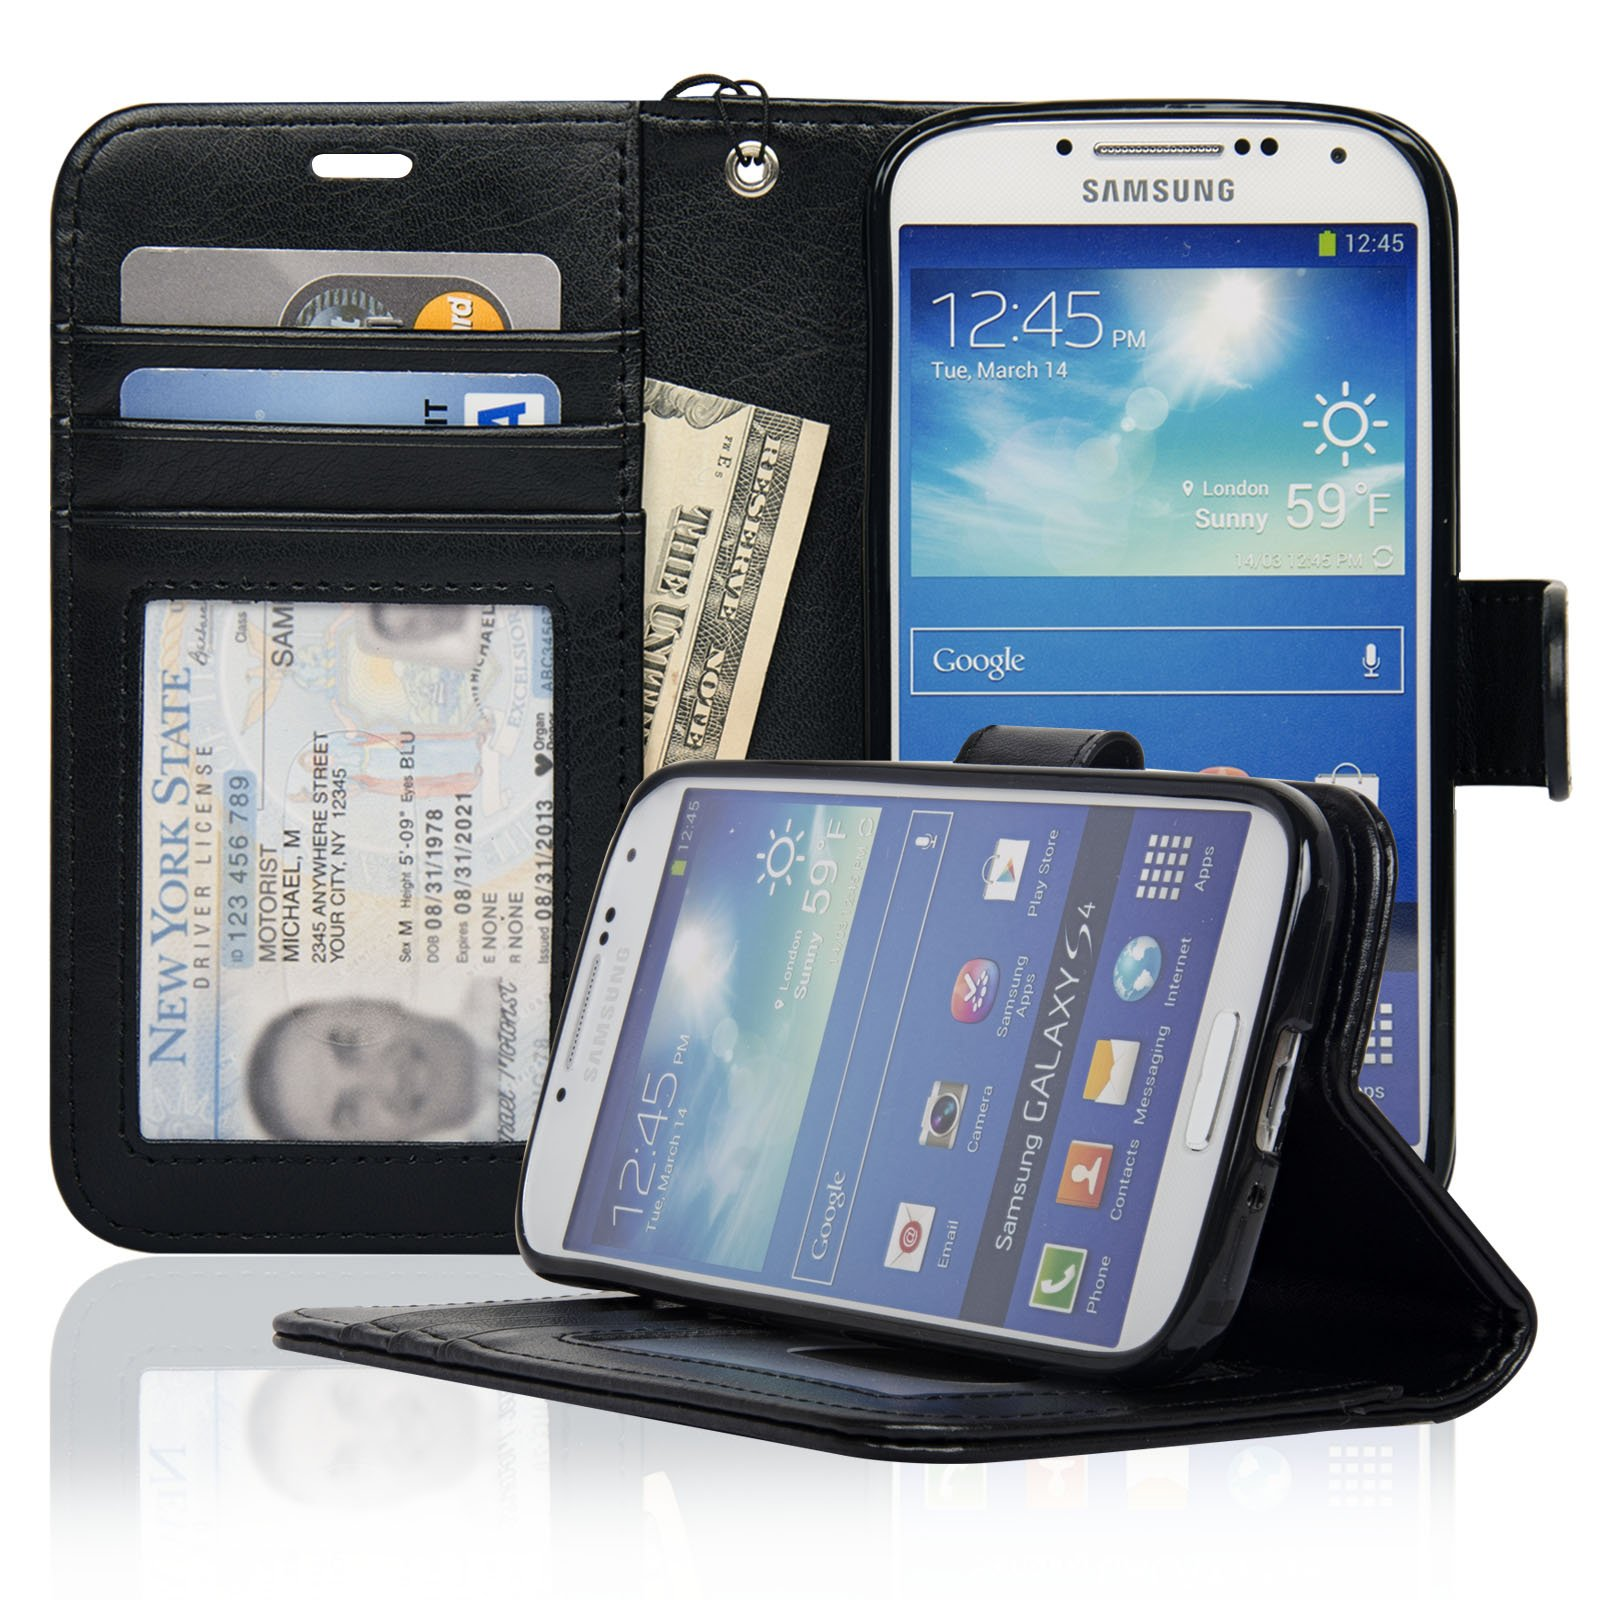 Navor Protective Flip Wallet Case for Samsung Galaxy S4 - Black (S4O-BK)